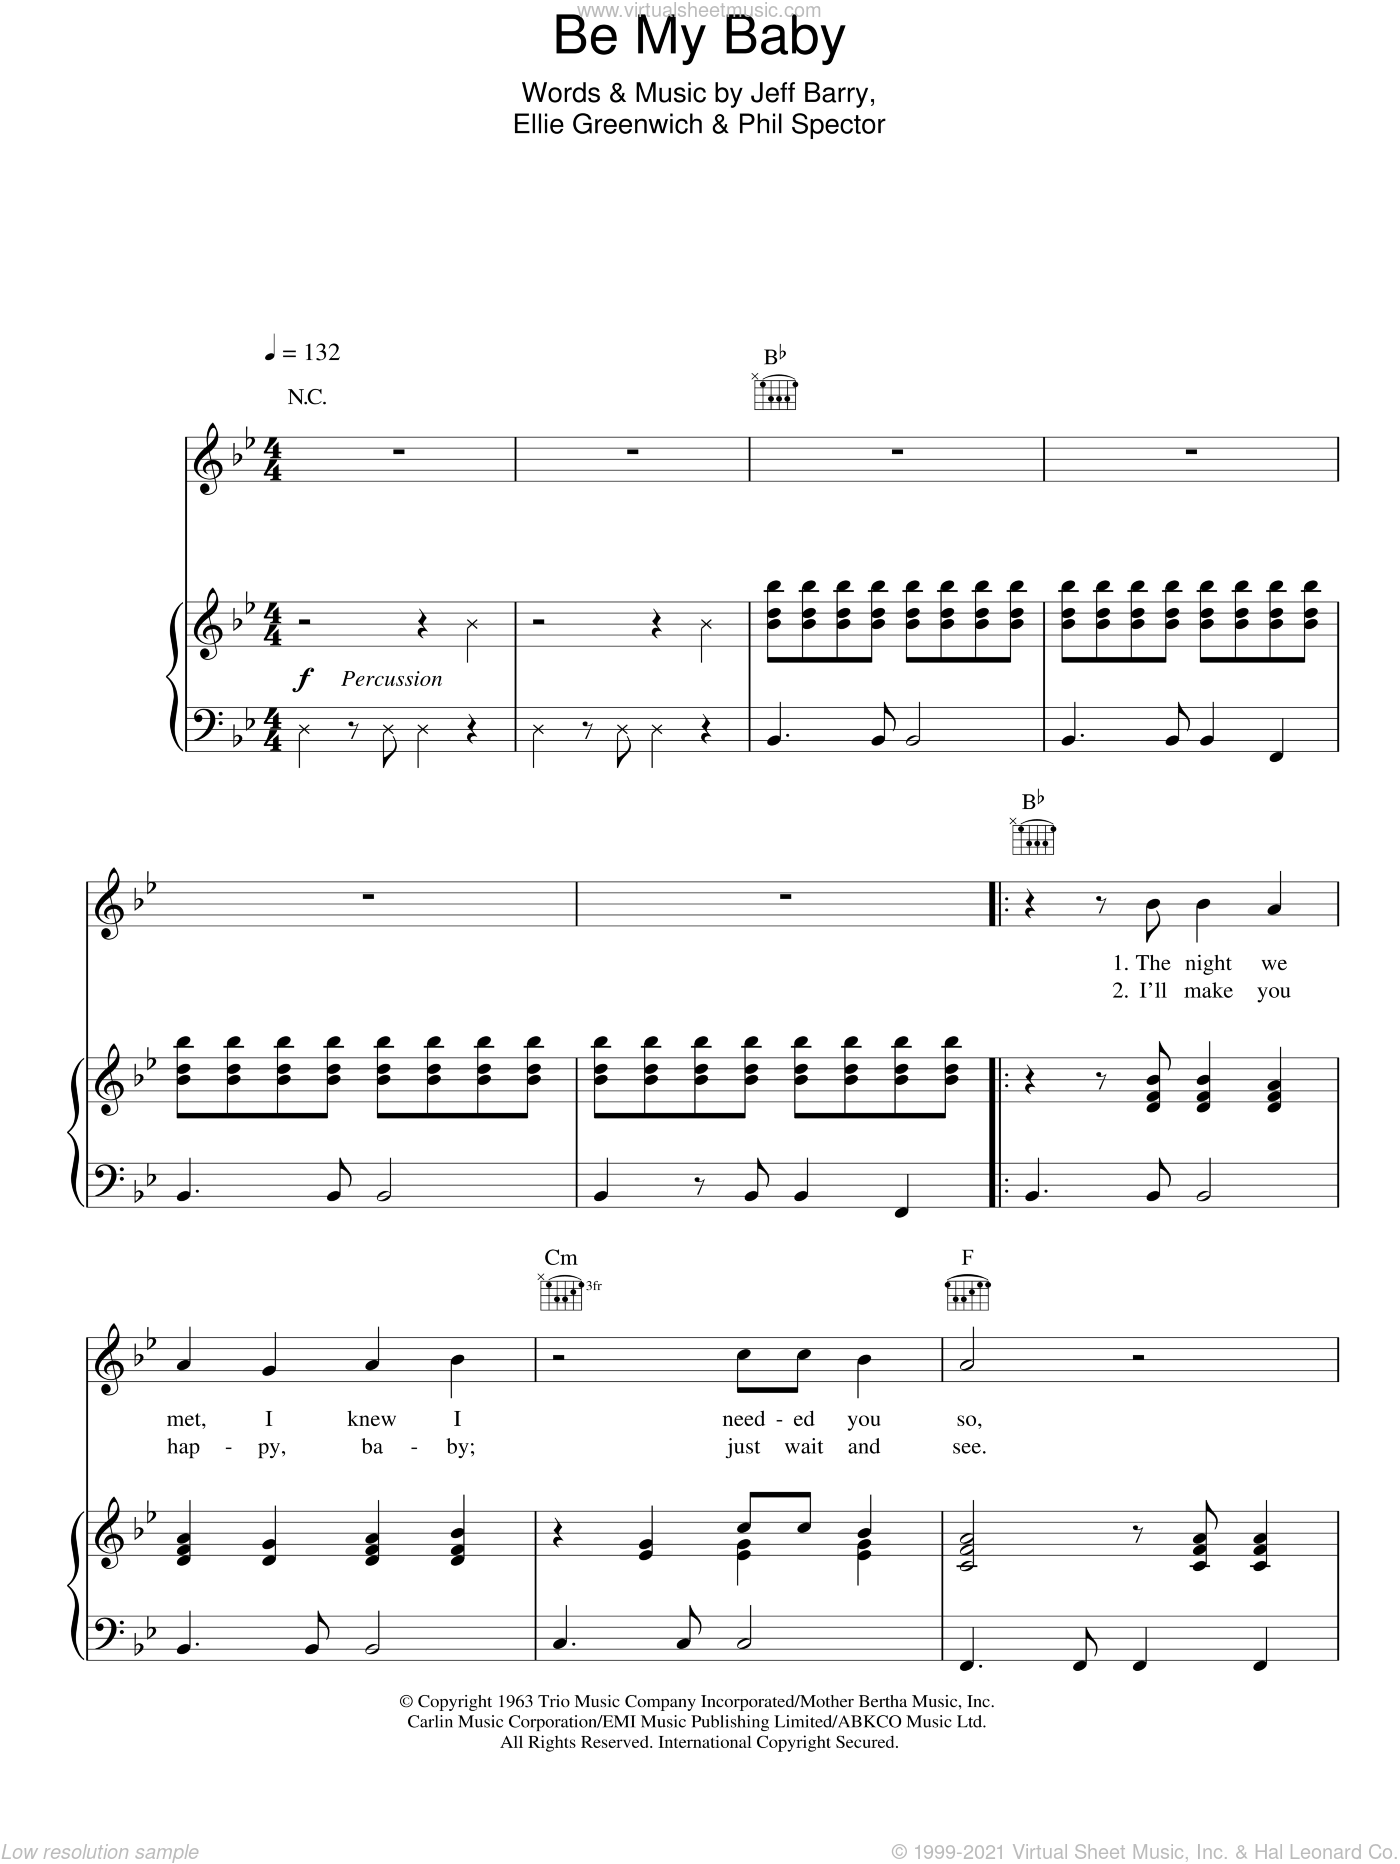 Be My Baby sheet music for voice, piano or guitar by Michael Buble, Ellie Greenwich and Jeff Barry, intermediate skill level